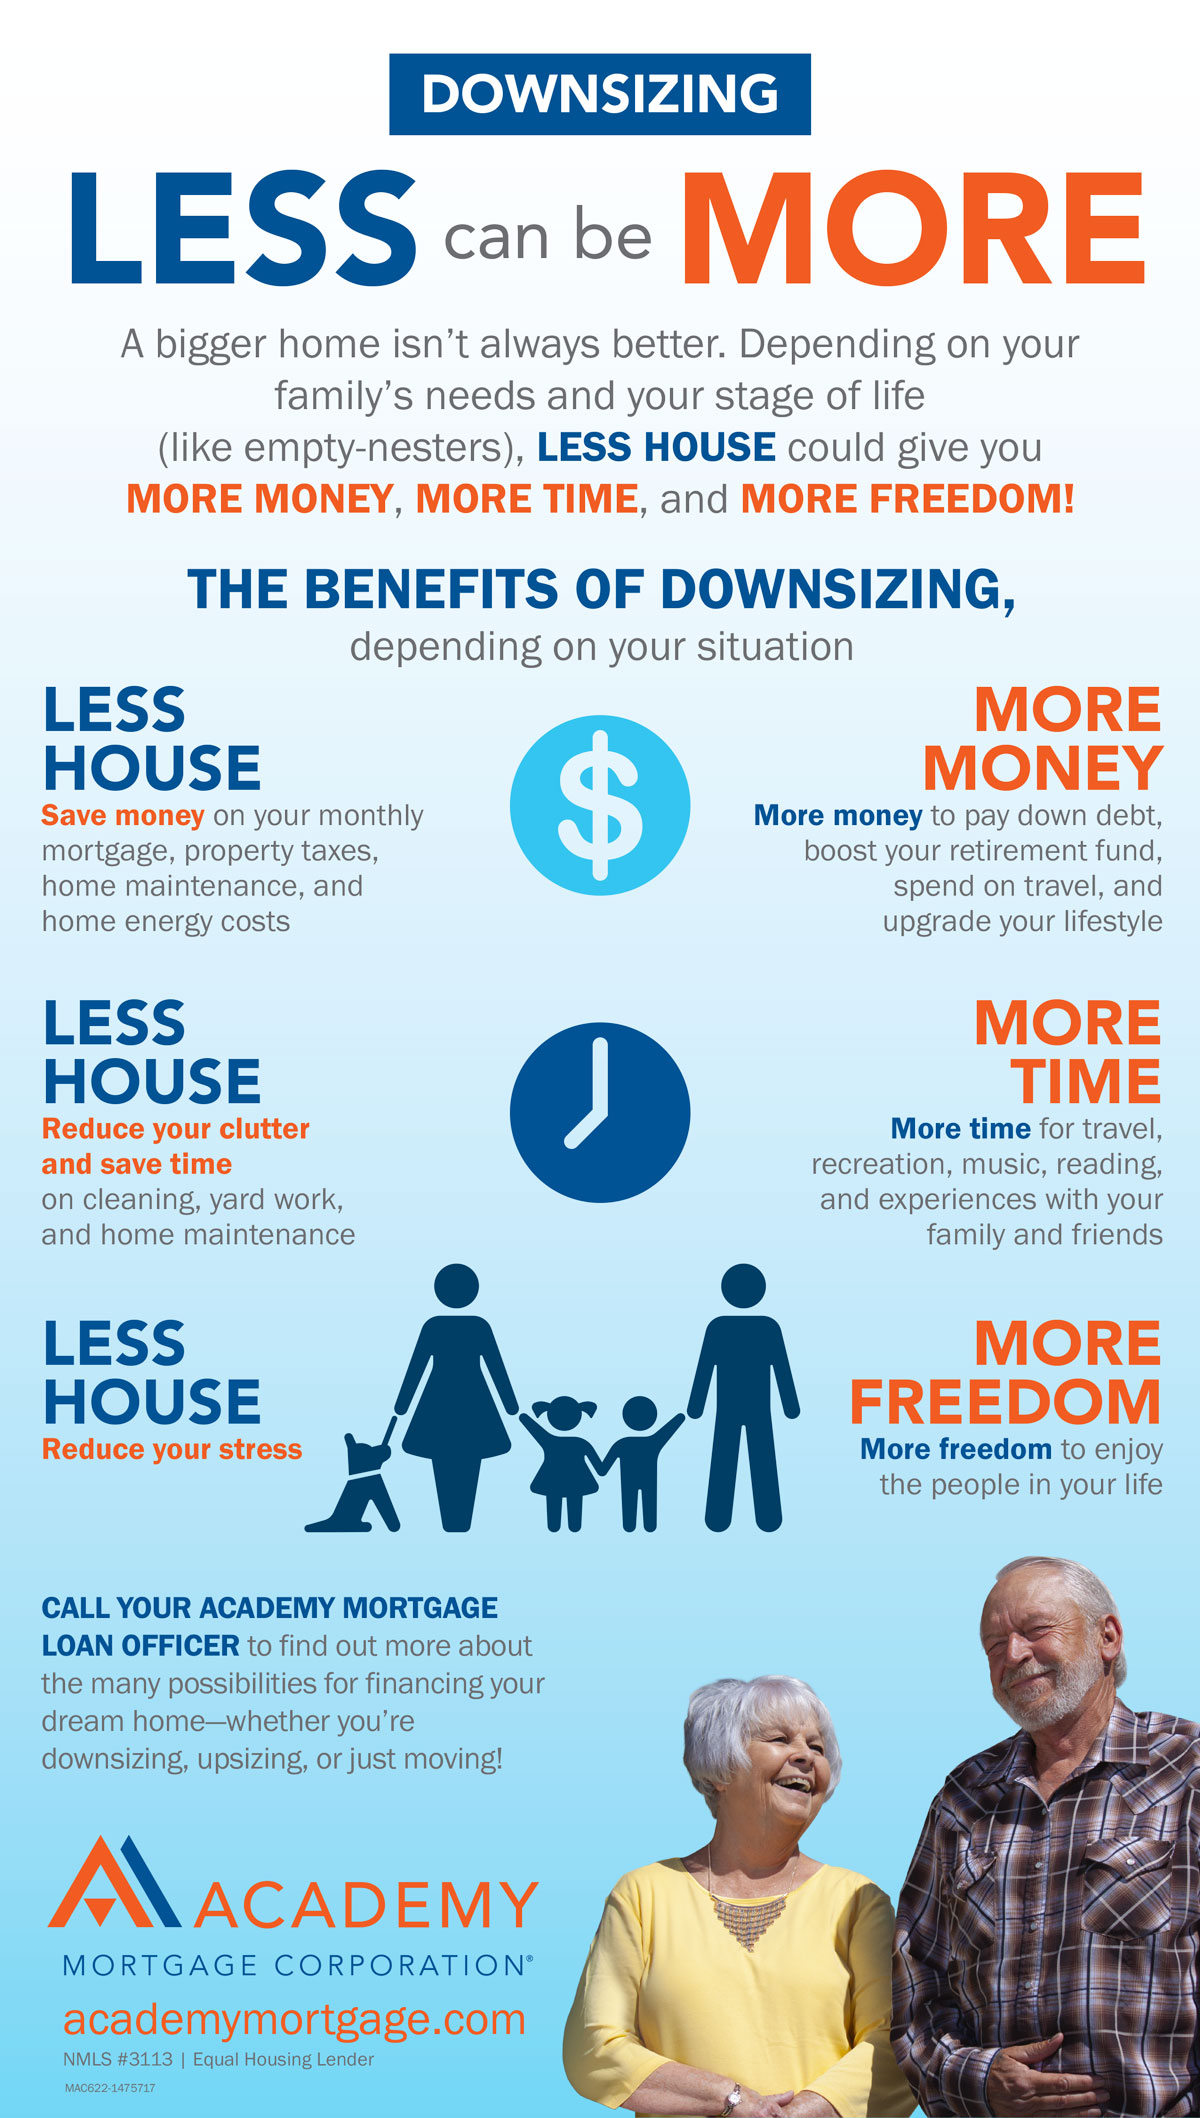 cyr-downsize-infographic